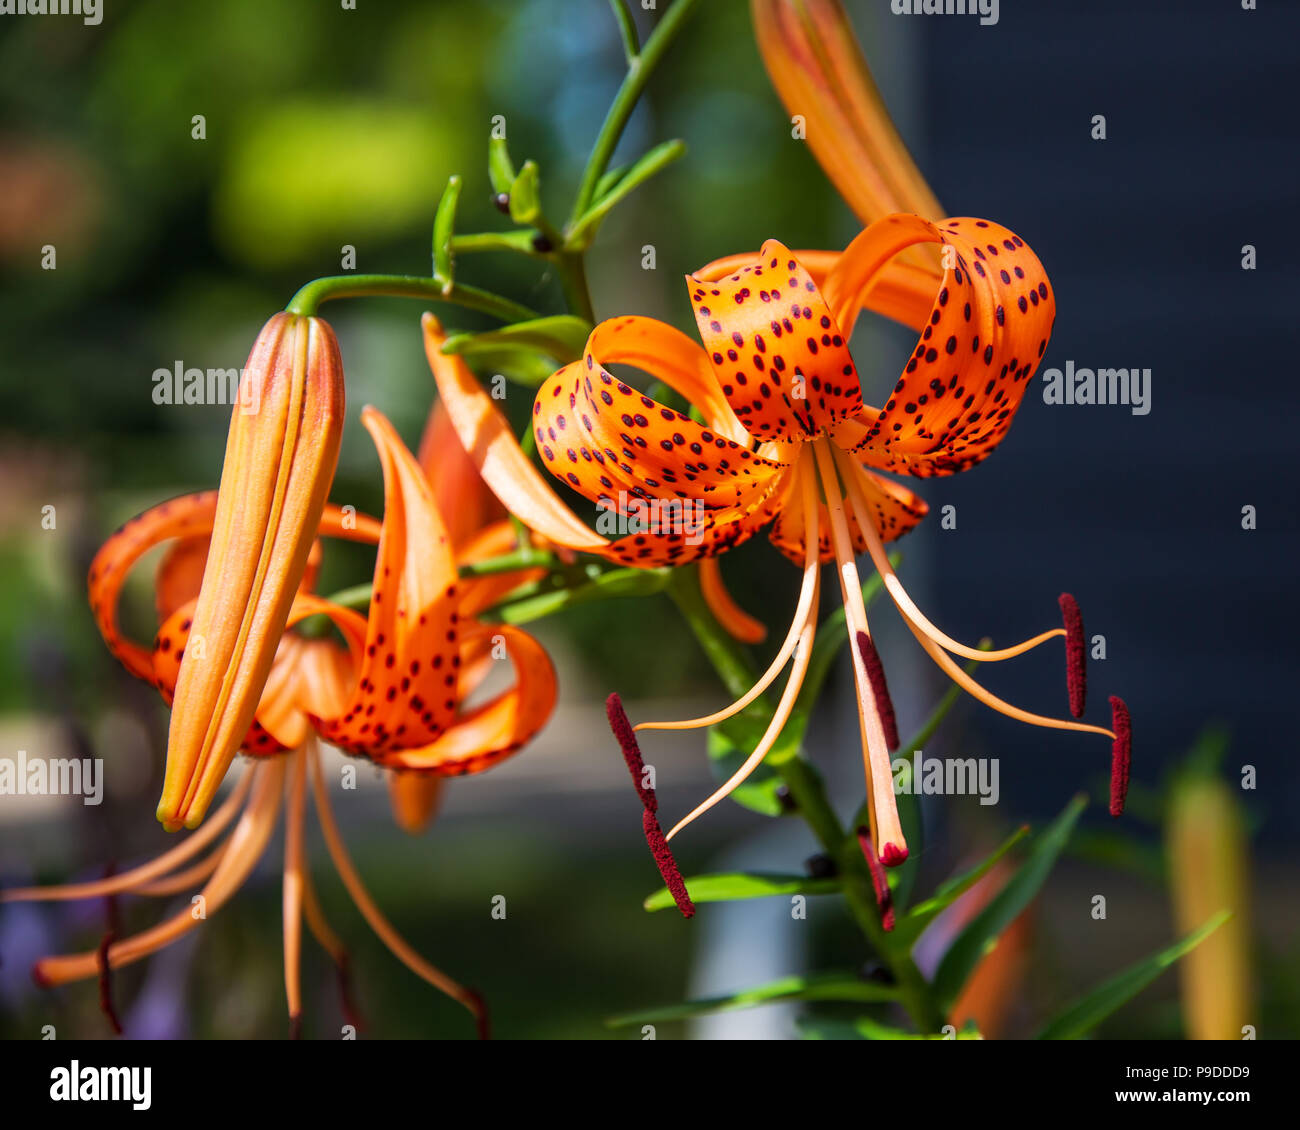 Close up of tiger lily flowers in a garden stock photos close up a close up of a tiger lily in the garden stock image izmirmasajfo